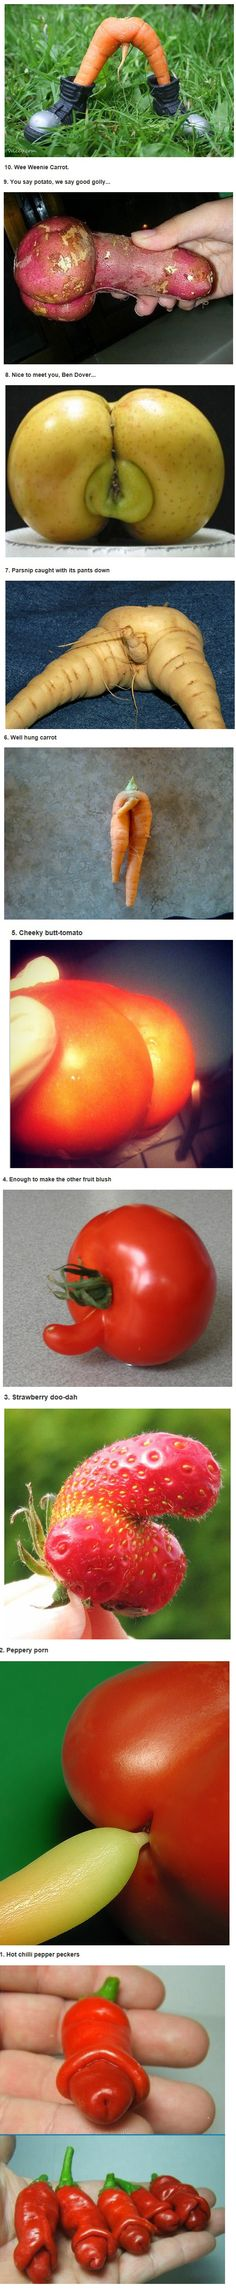 10 of the Naughtiest Vegetables on Earth | Mommy Has A Potty MouthMommy Has A Potty Mouth